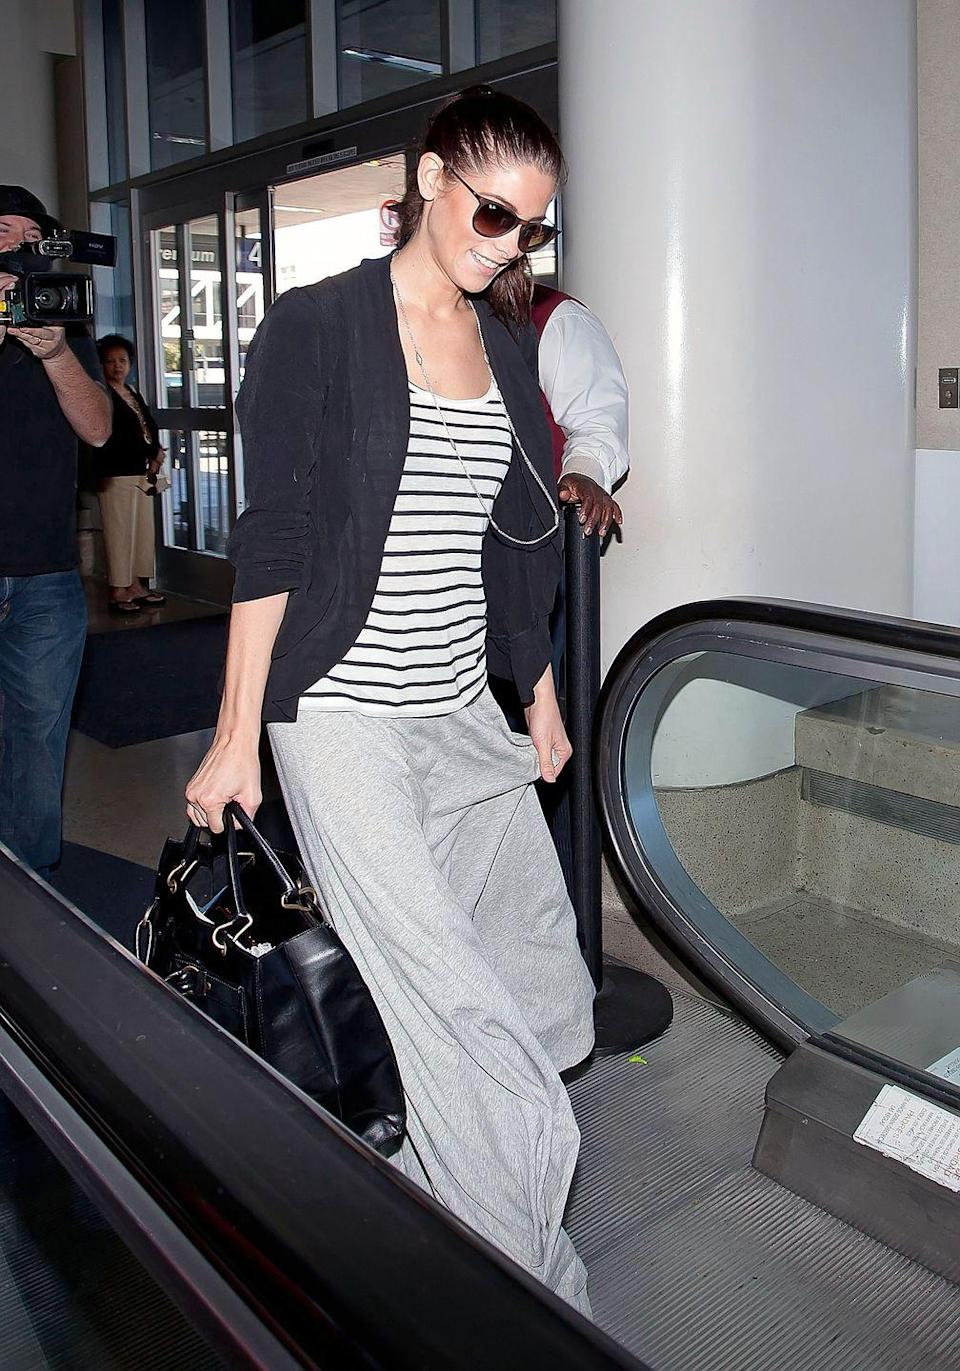 <p><strong>Ashley Greene, 2012</strong><strong>:</strong> Dragging hems are not your friend when you're going somewhere with people movers, escalators, and a generally gross floors everywhere.</p>